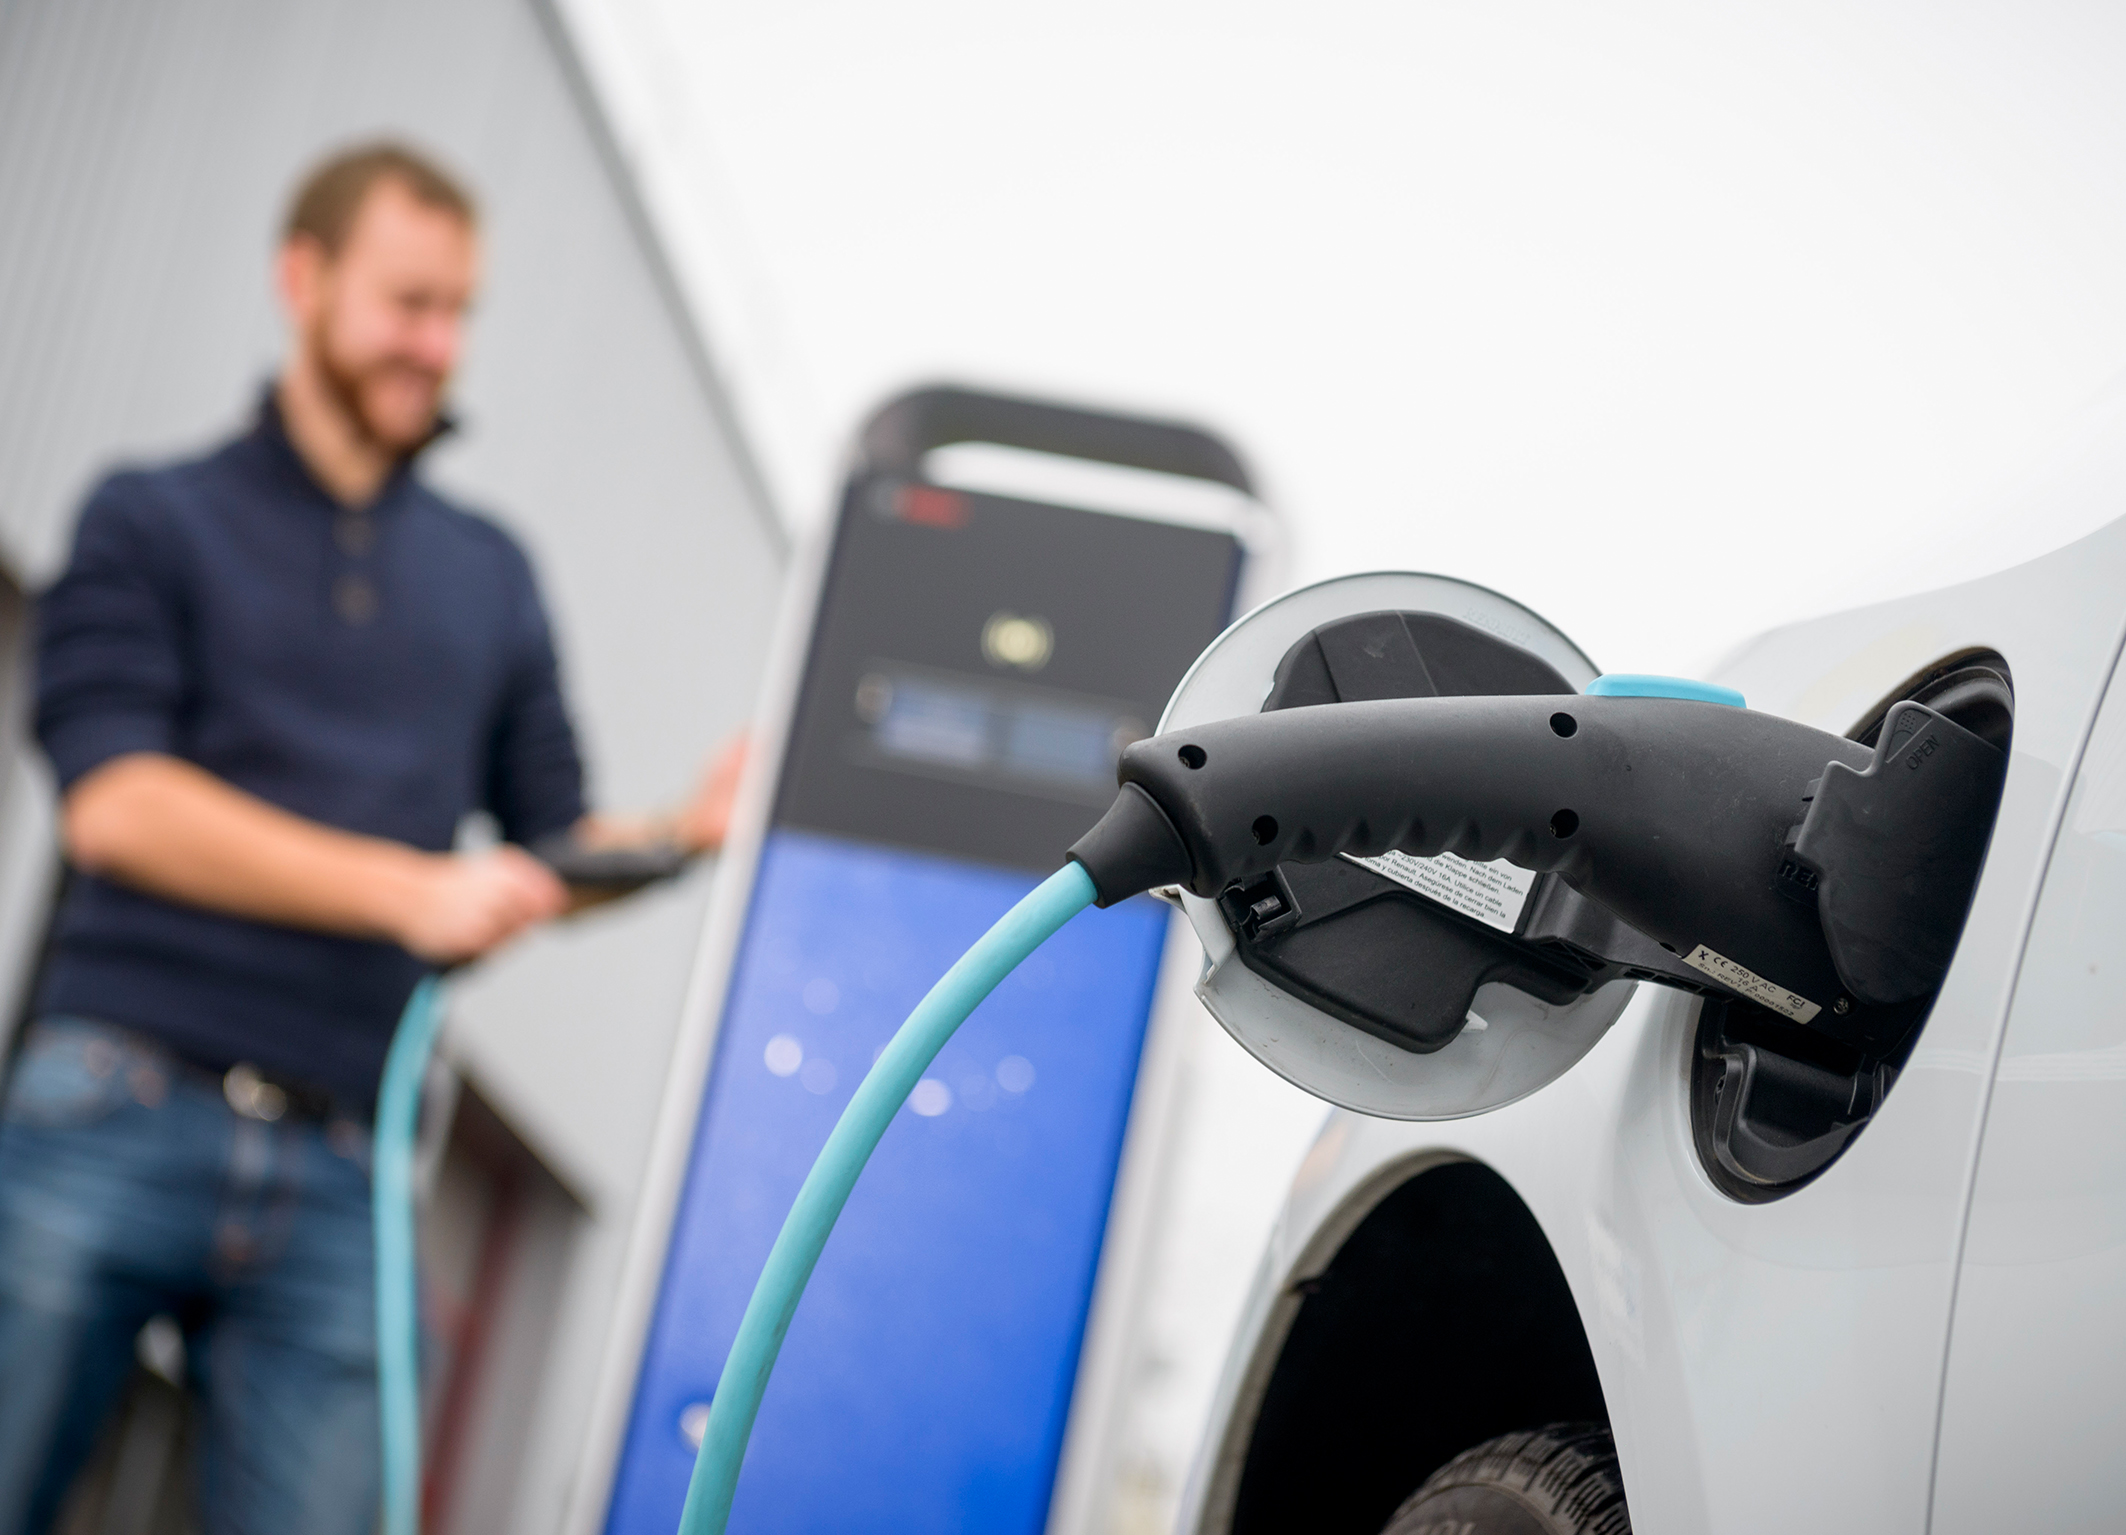 Electromobility: Key to market success is suitability for everyday use